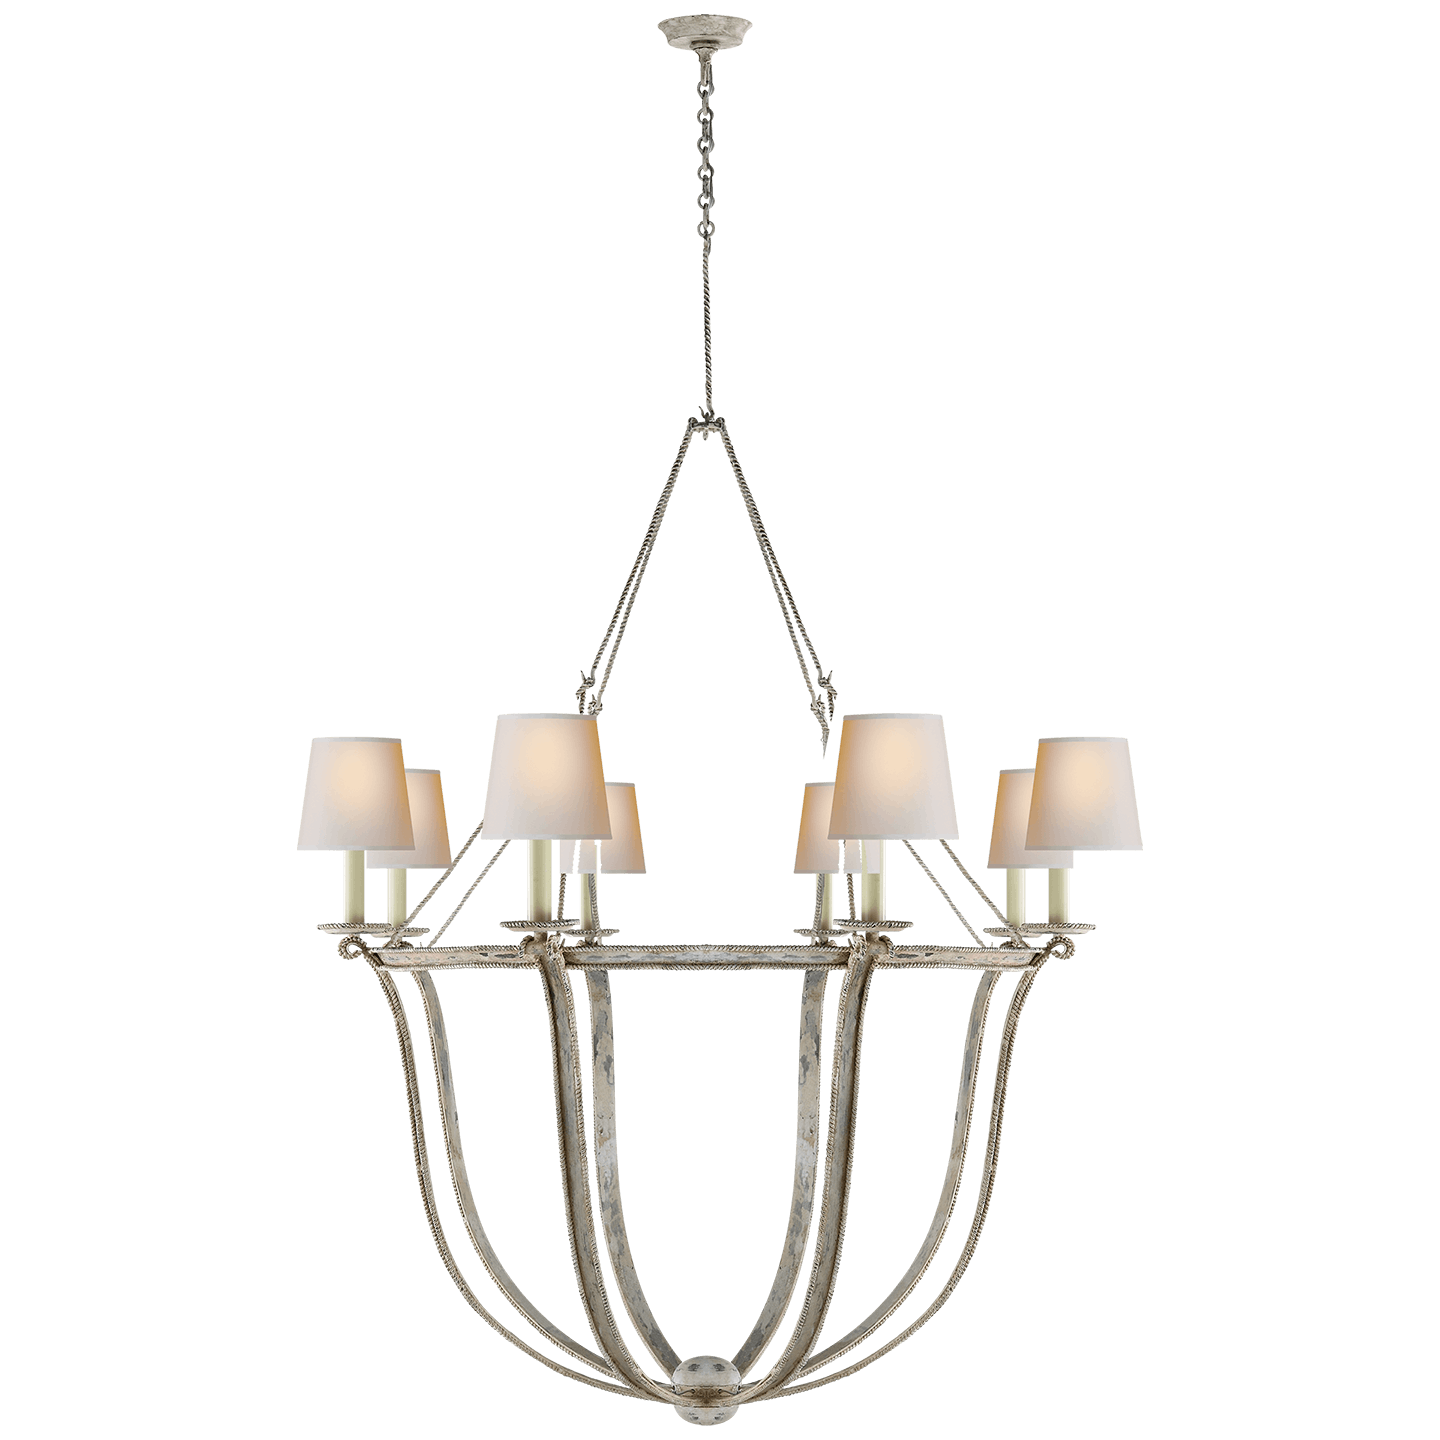 Visual comfort chc 1577ow np lancaster chandelier in old white with natural paper shades